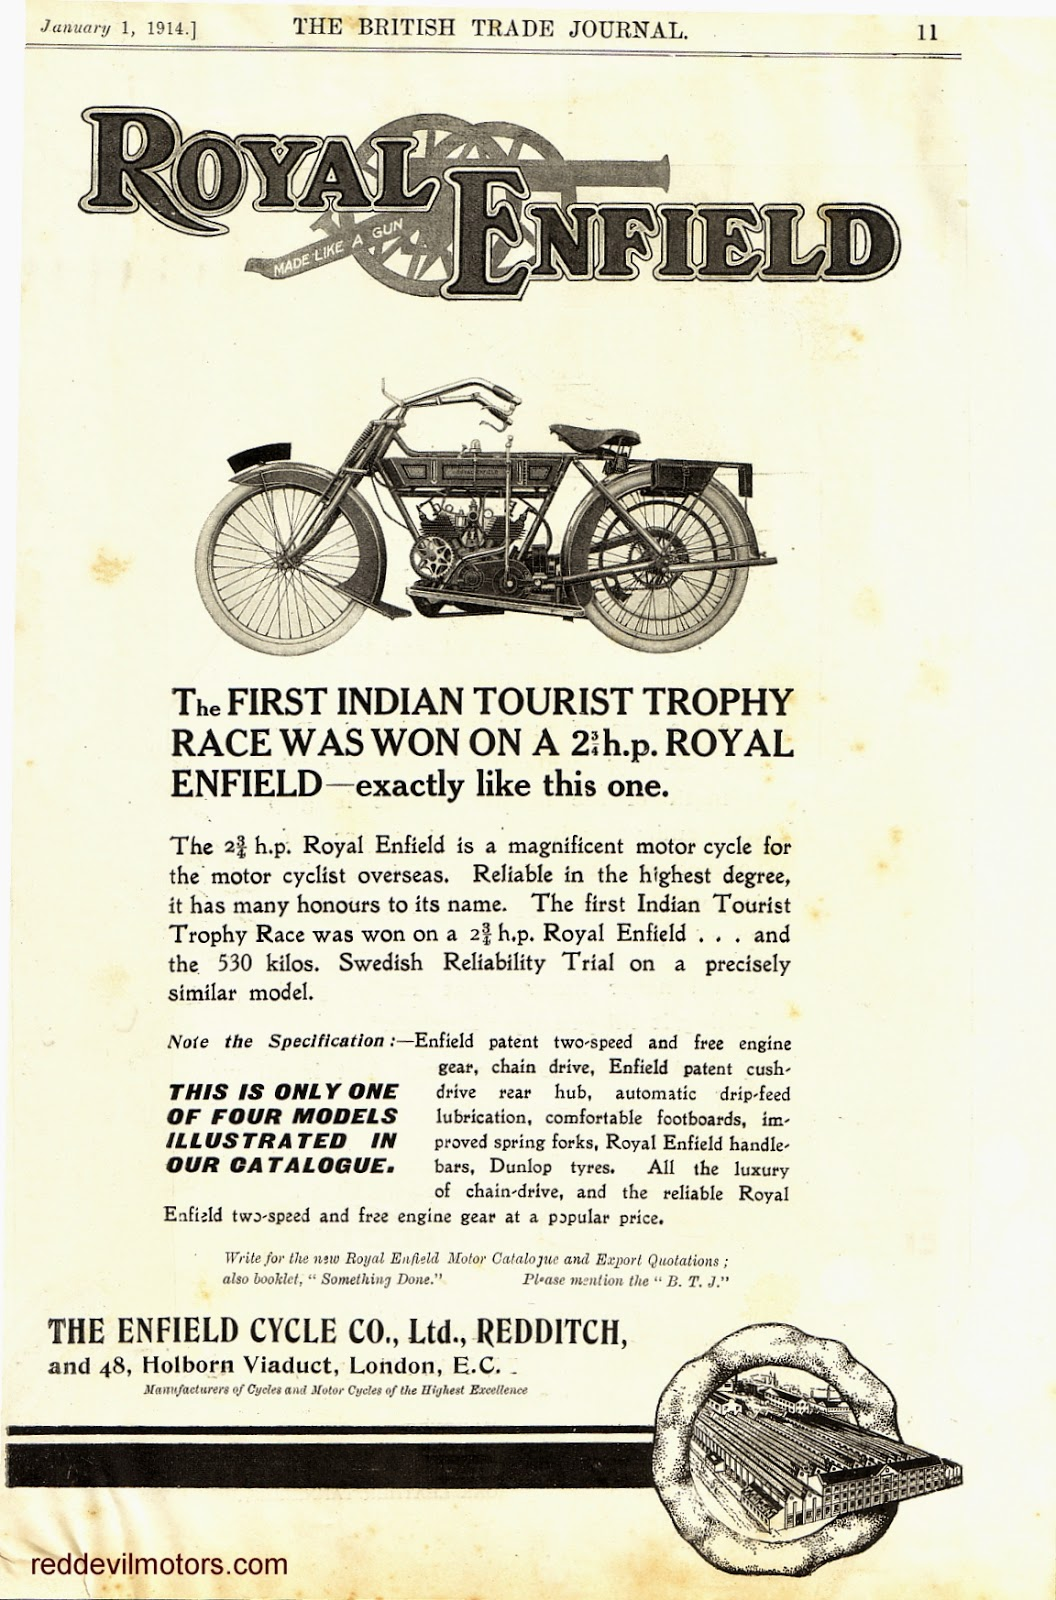 Advert for 1914 Royal Enfield v-twin